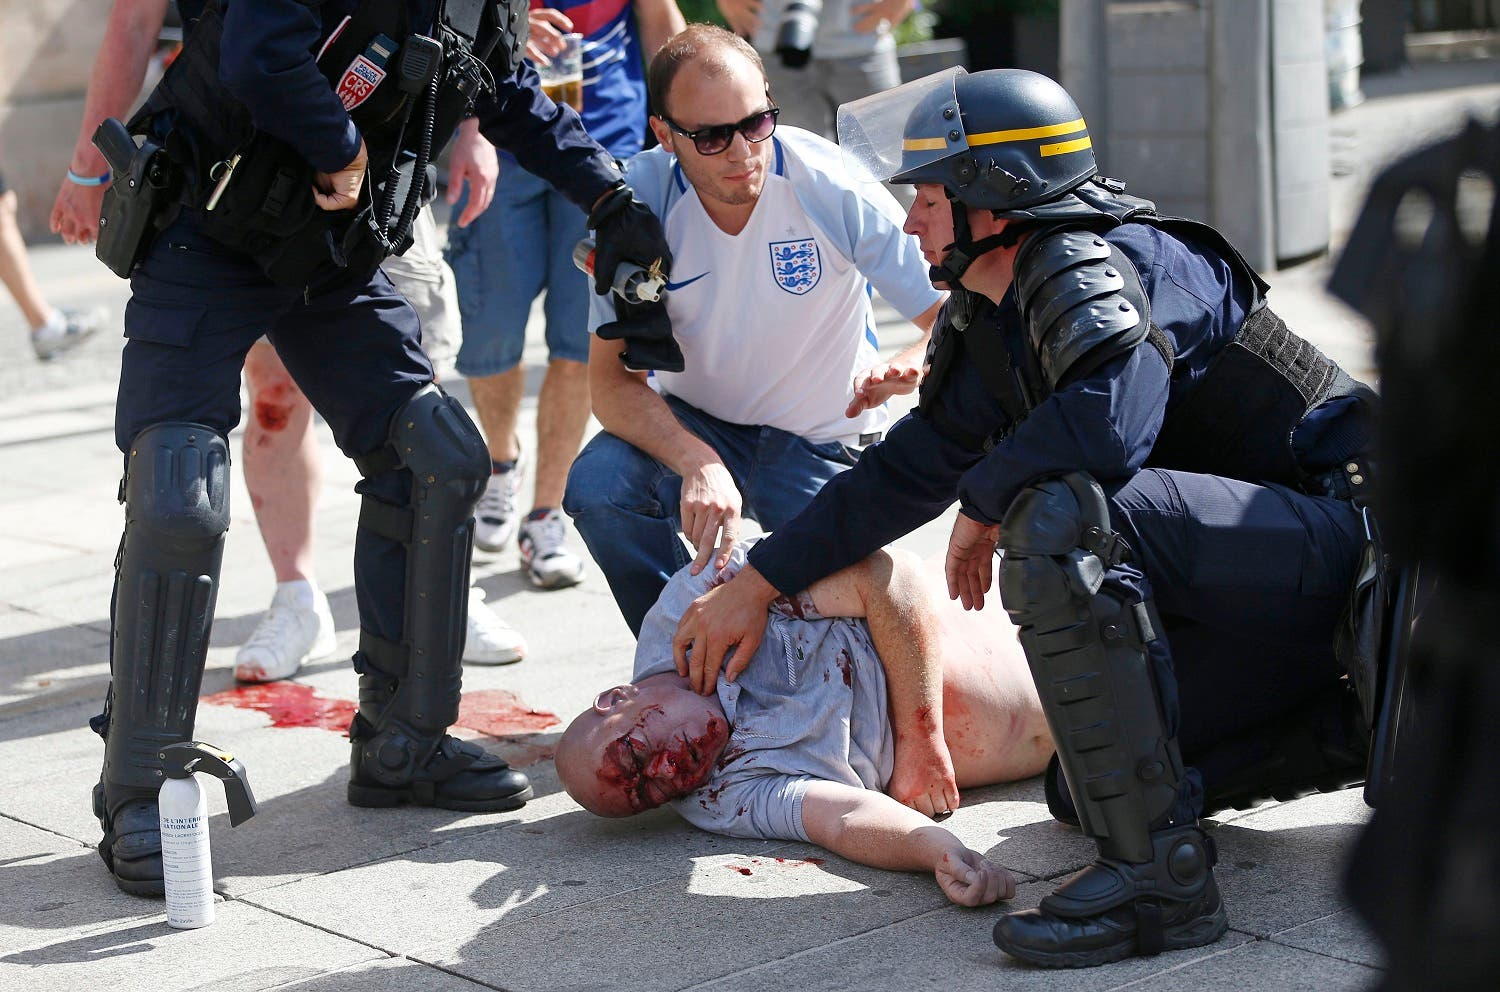 An man injured in clashes is assisted by police officers in downtown Marseille, France, Saturday, June 11, 2016. Riot police have thrown tear gas canisters at soccer fans Saturday in Marseille's Old Port in a third straight day of violence in the city. (AP)